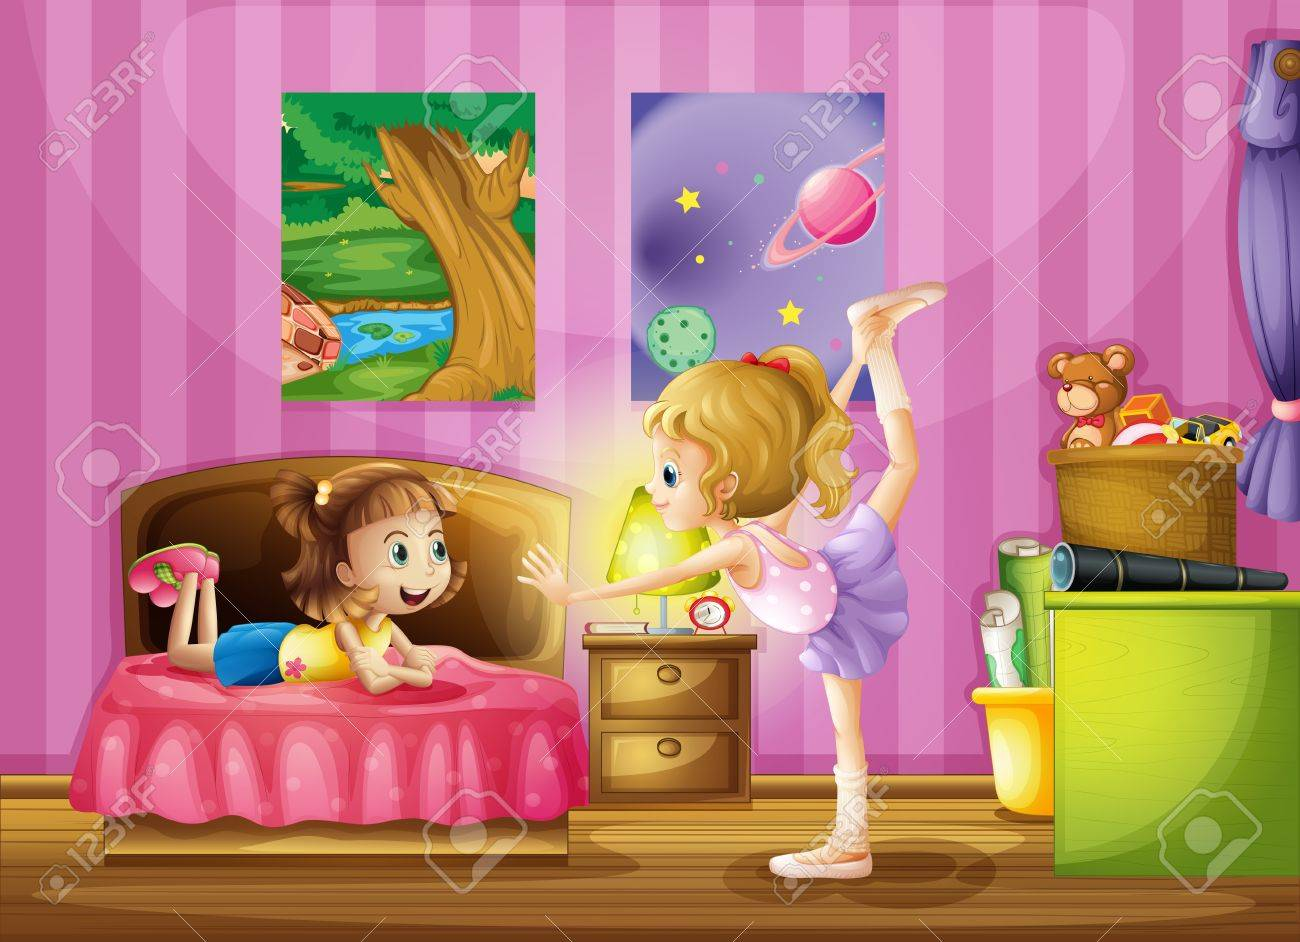 Bedroom clipart clipart kid - Kids Exercising Clipart Illustration Of Two Young Girls Inside A Bedroom